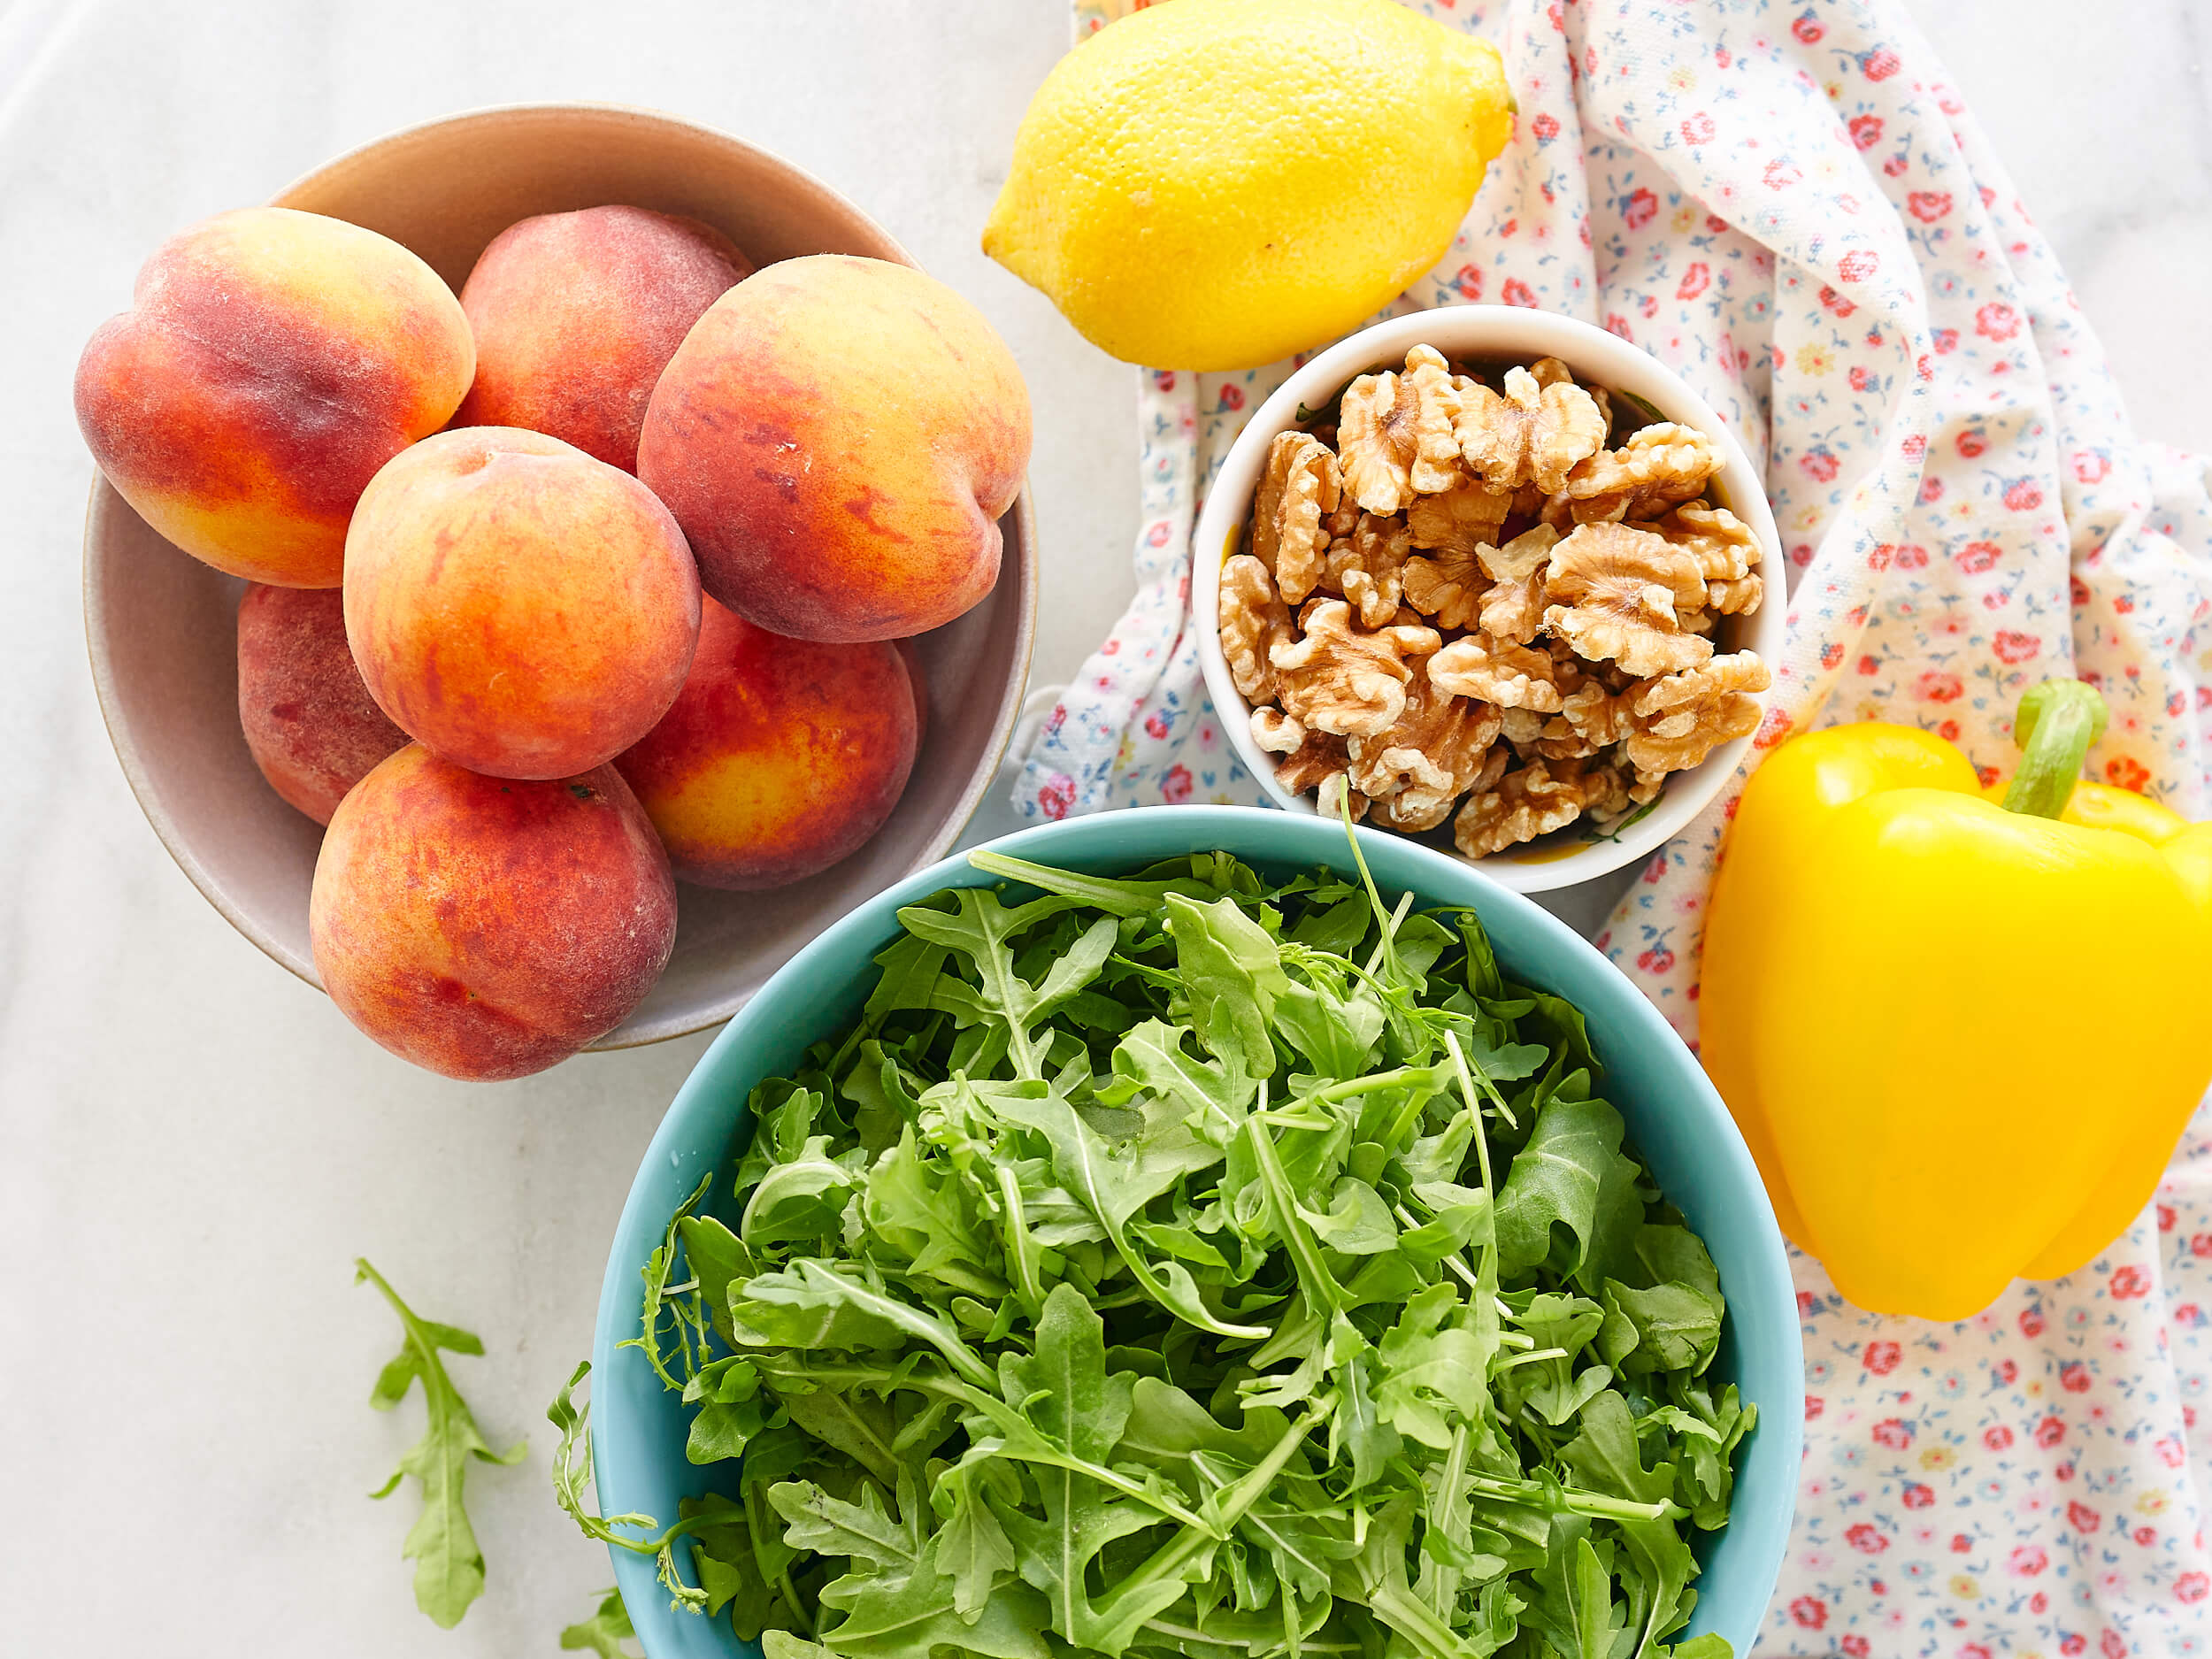 Peaches, arugula and lemon